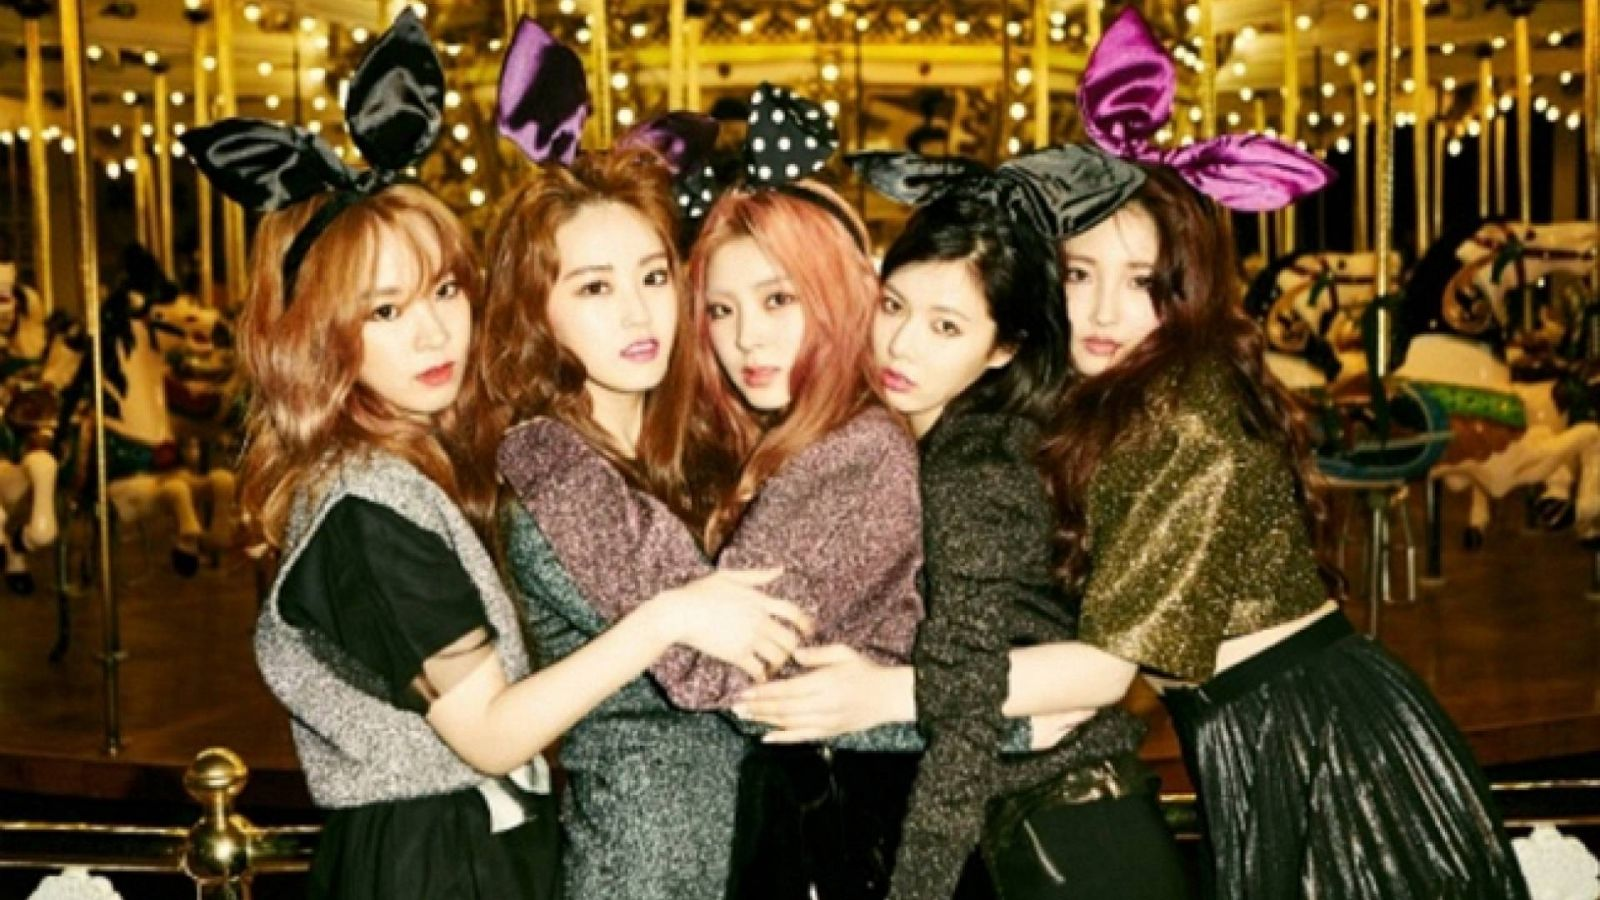 4Minute Tukholmaan ja Barcelonaan © Cube Entertainment